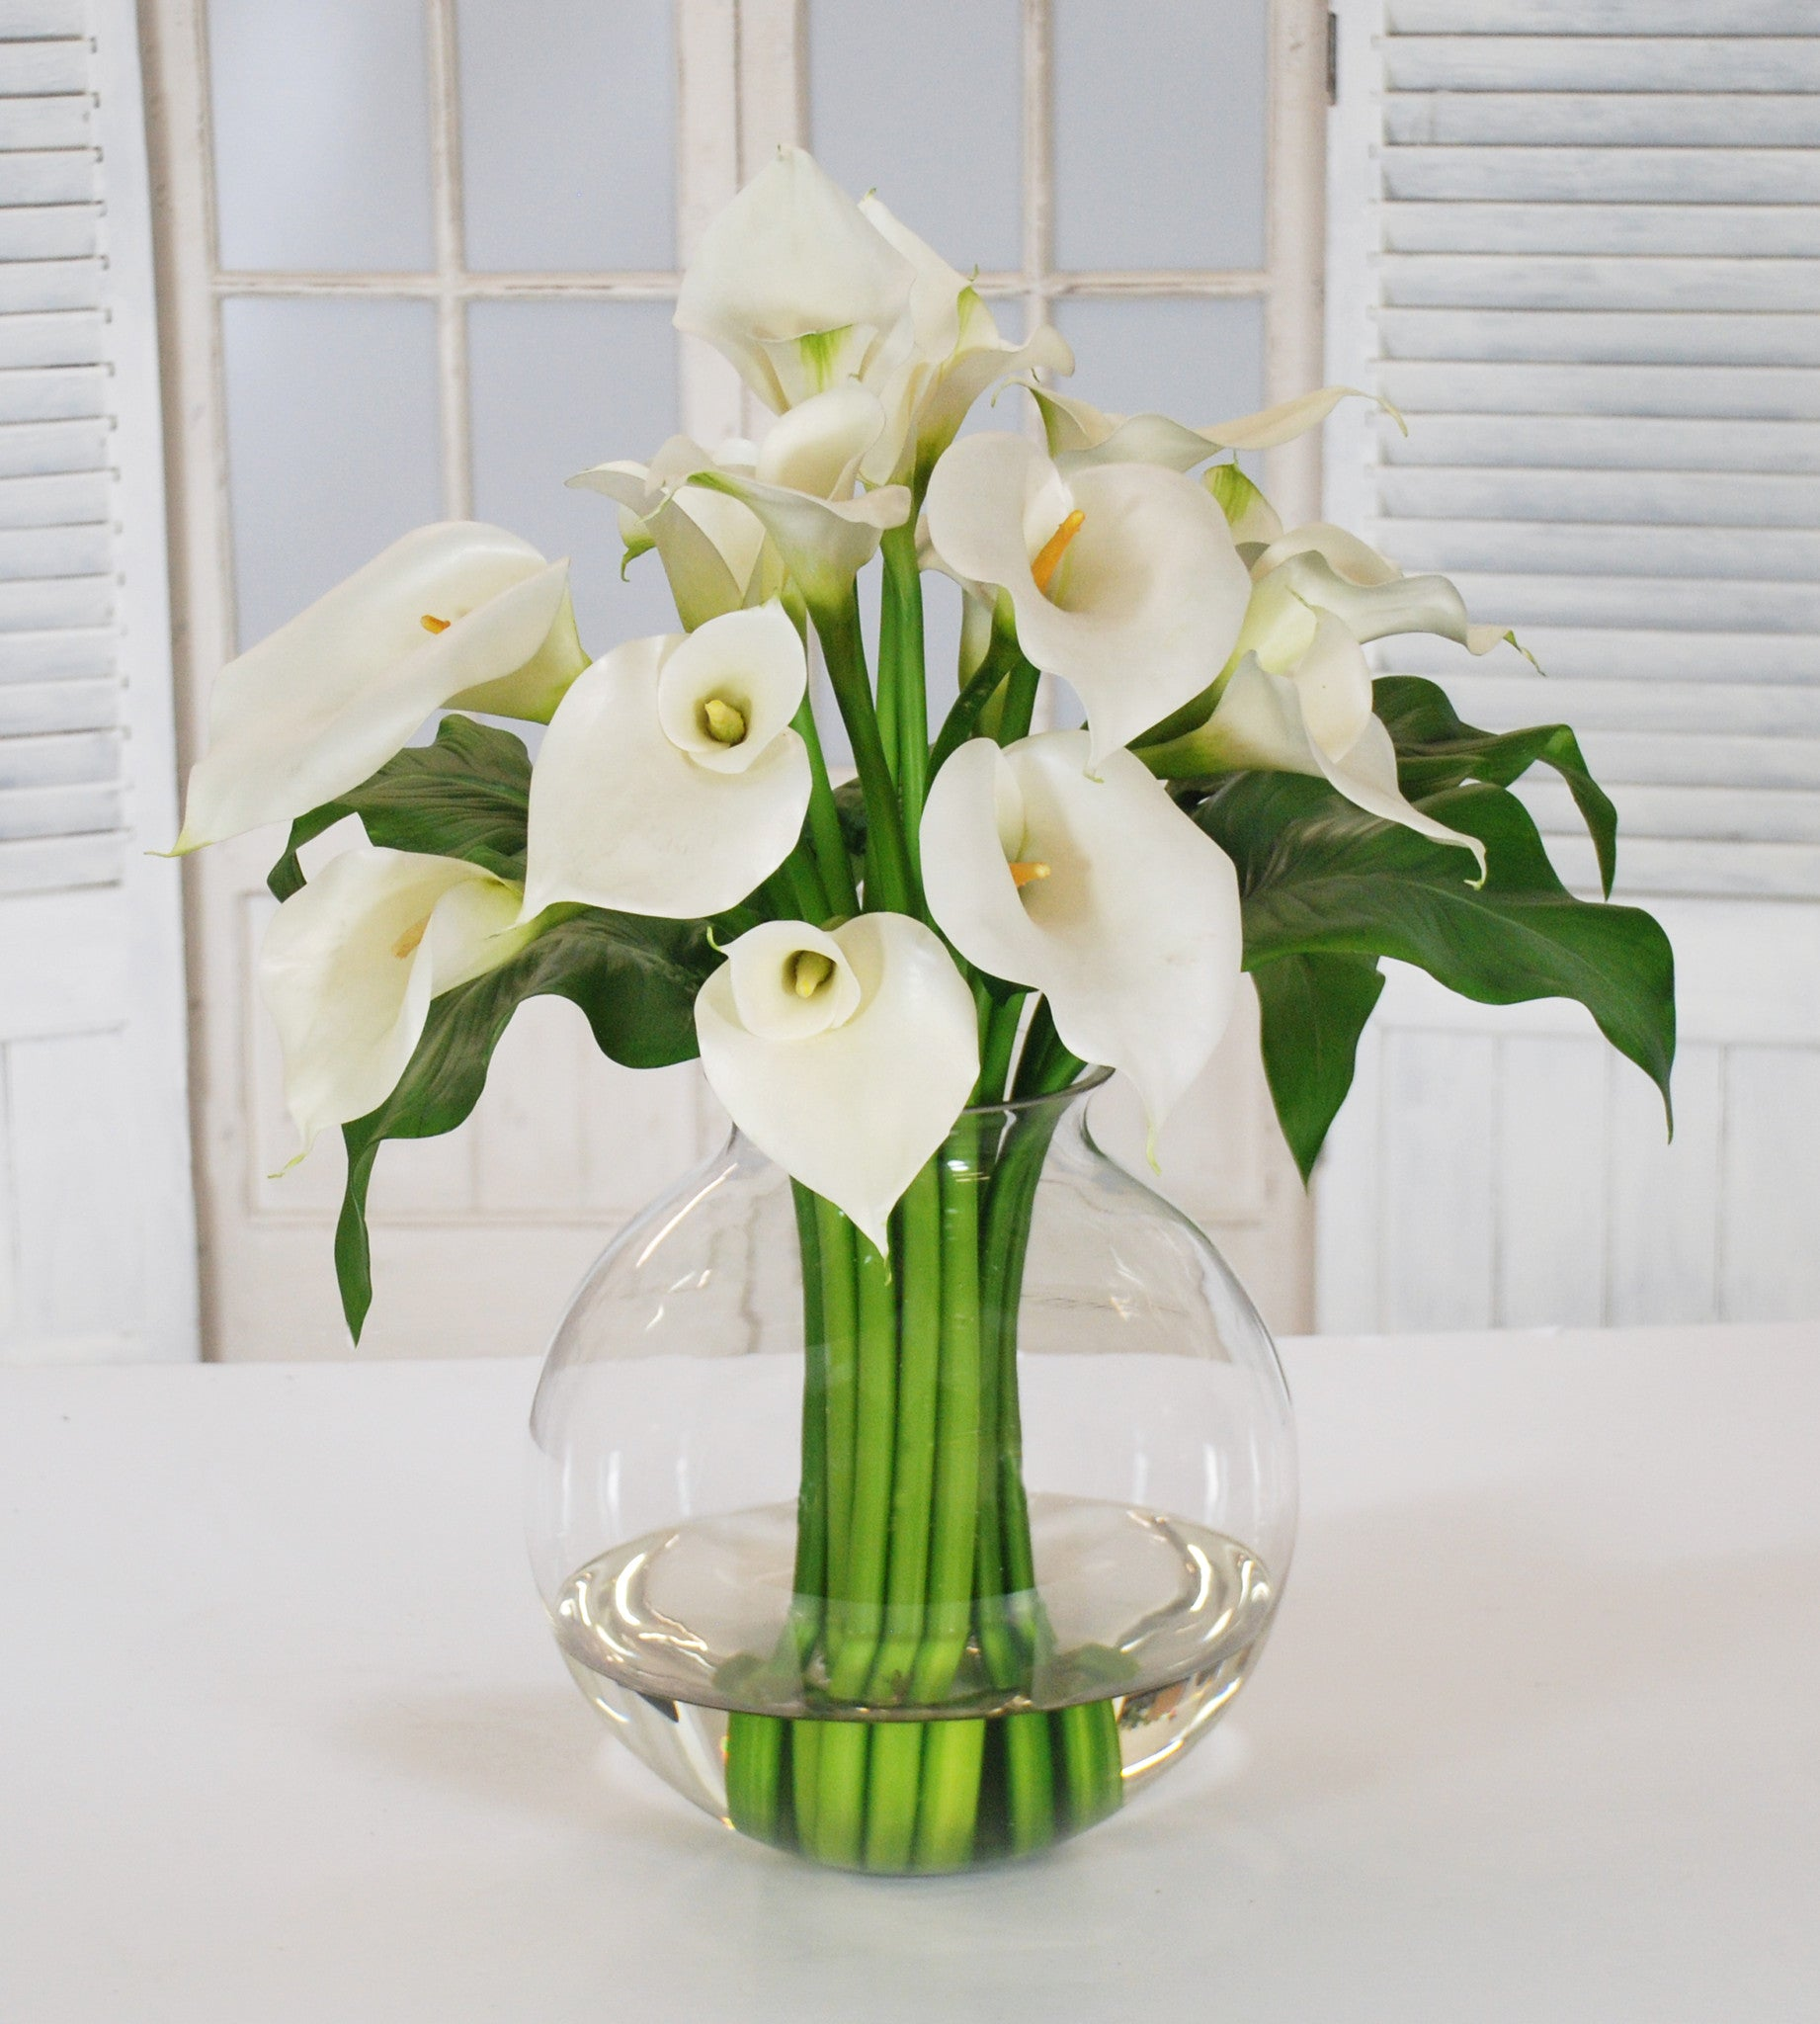 Calla lily winward home calla lily in glass ball vase whd084 wh winward home faux floral reviewsmspy